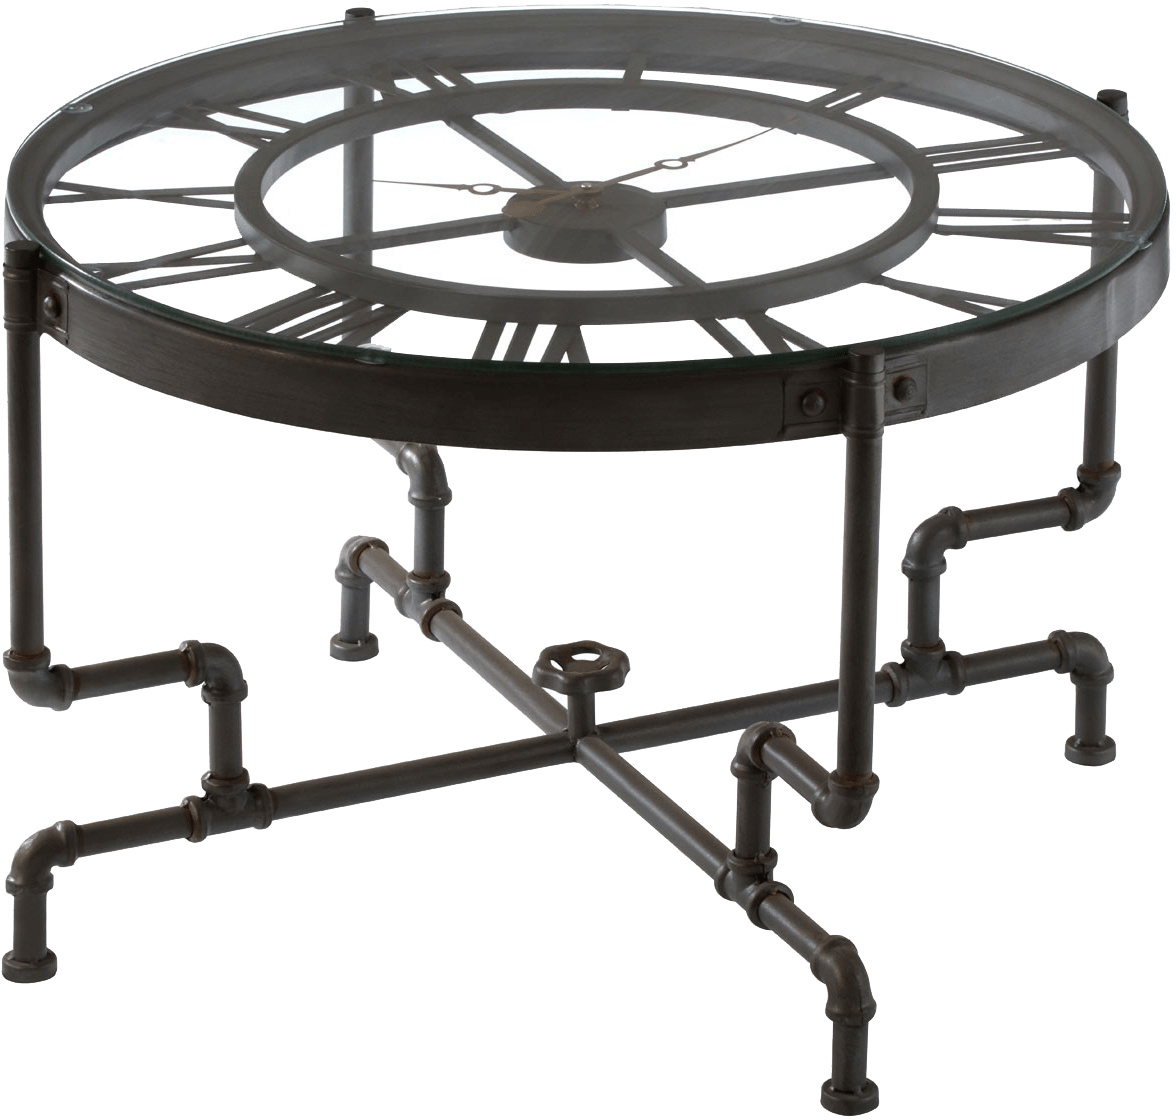 lagoon collections cisely clock style coffee table with black glass top and iron frame